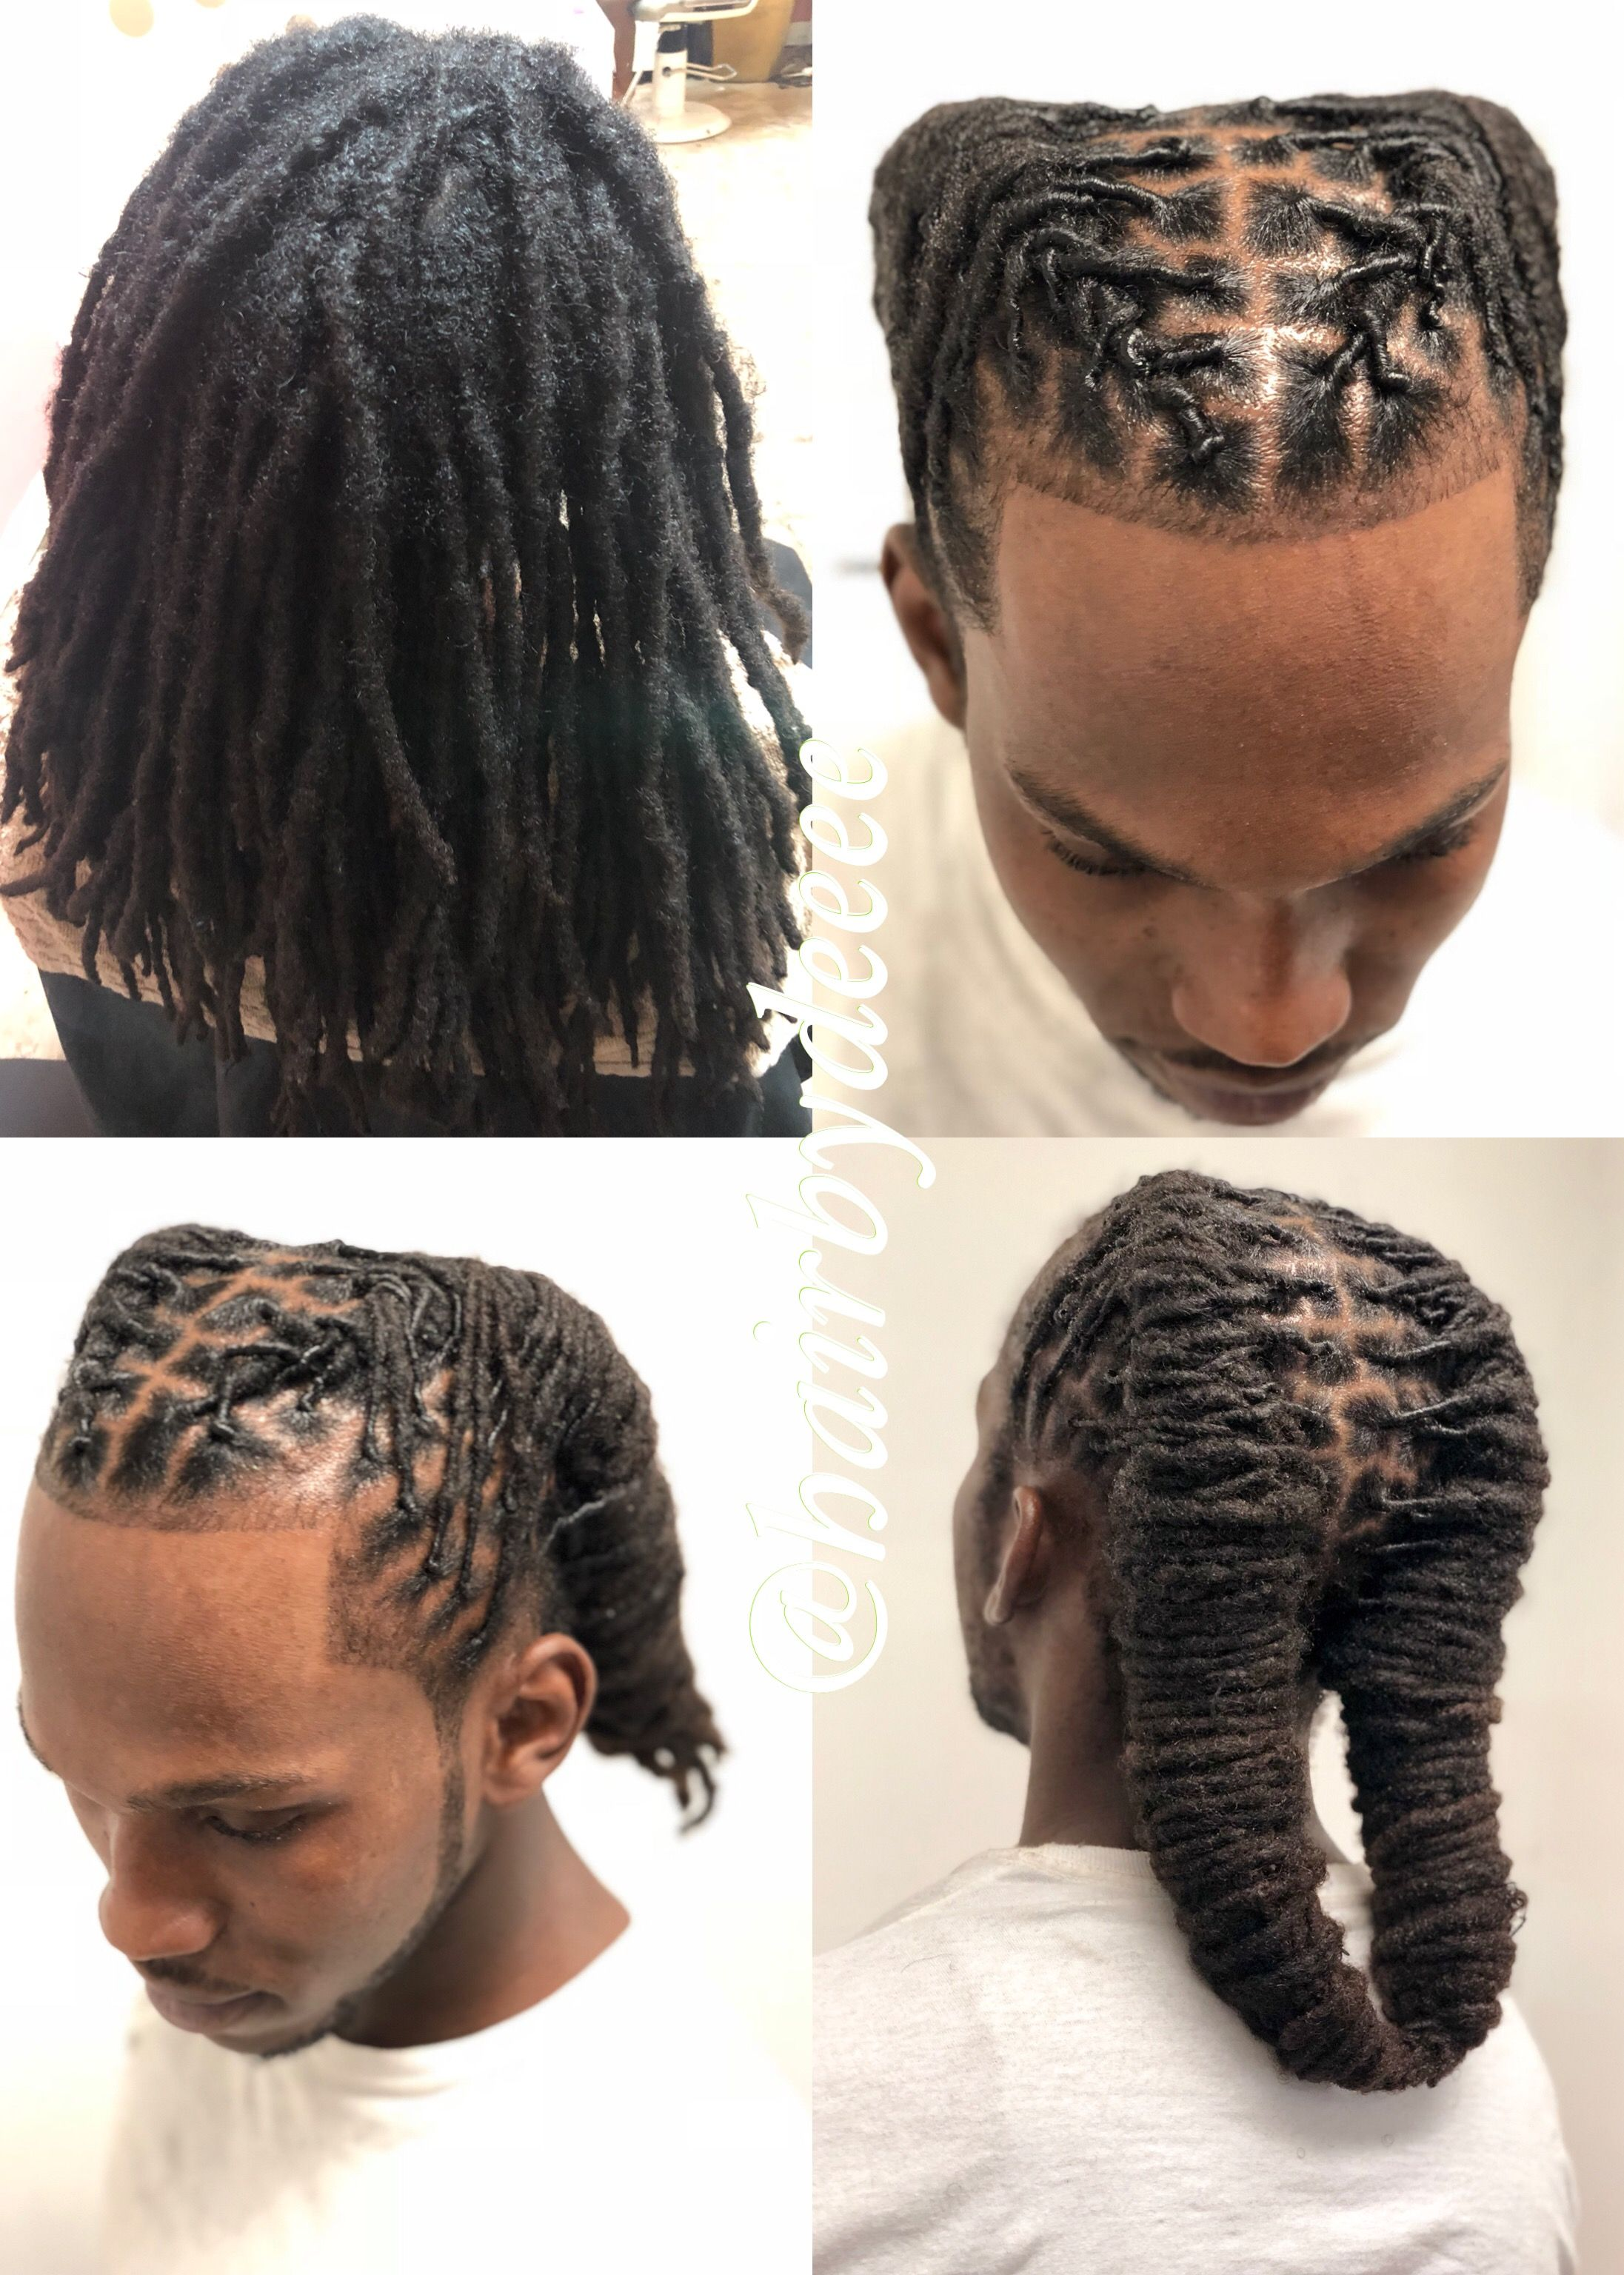 Pin On Dreads Style For Men